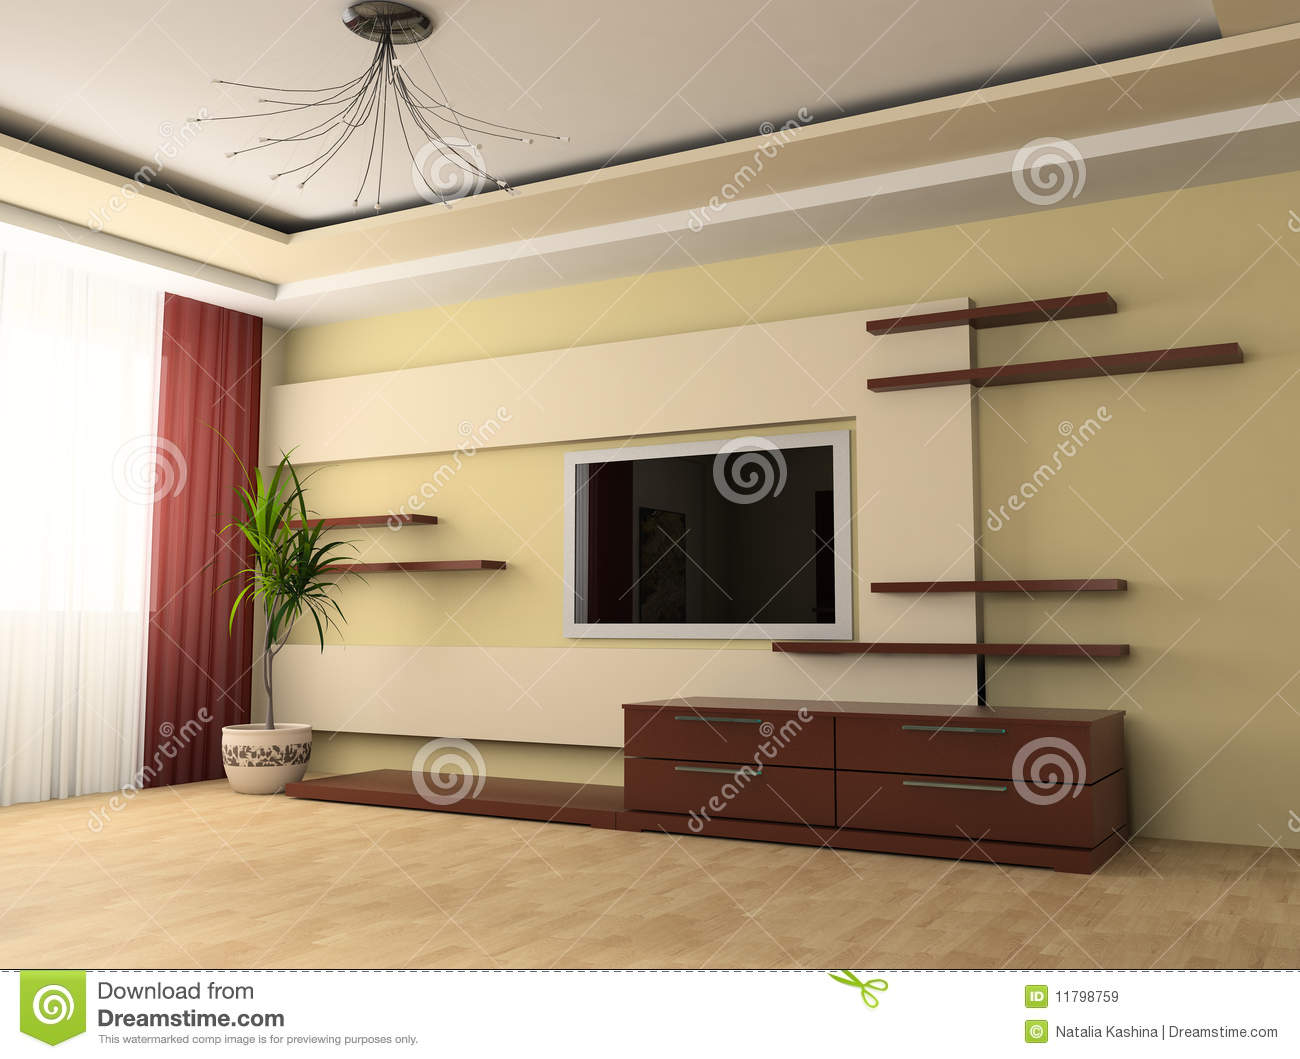 Drawing room royalty free stock images image 11798759 for Drawing room